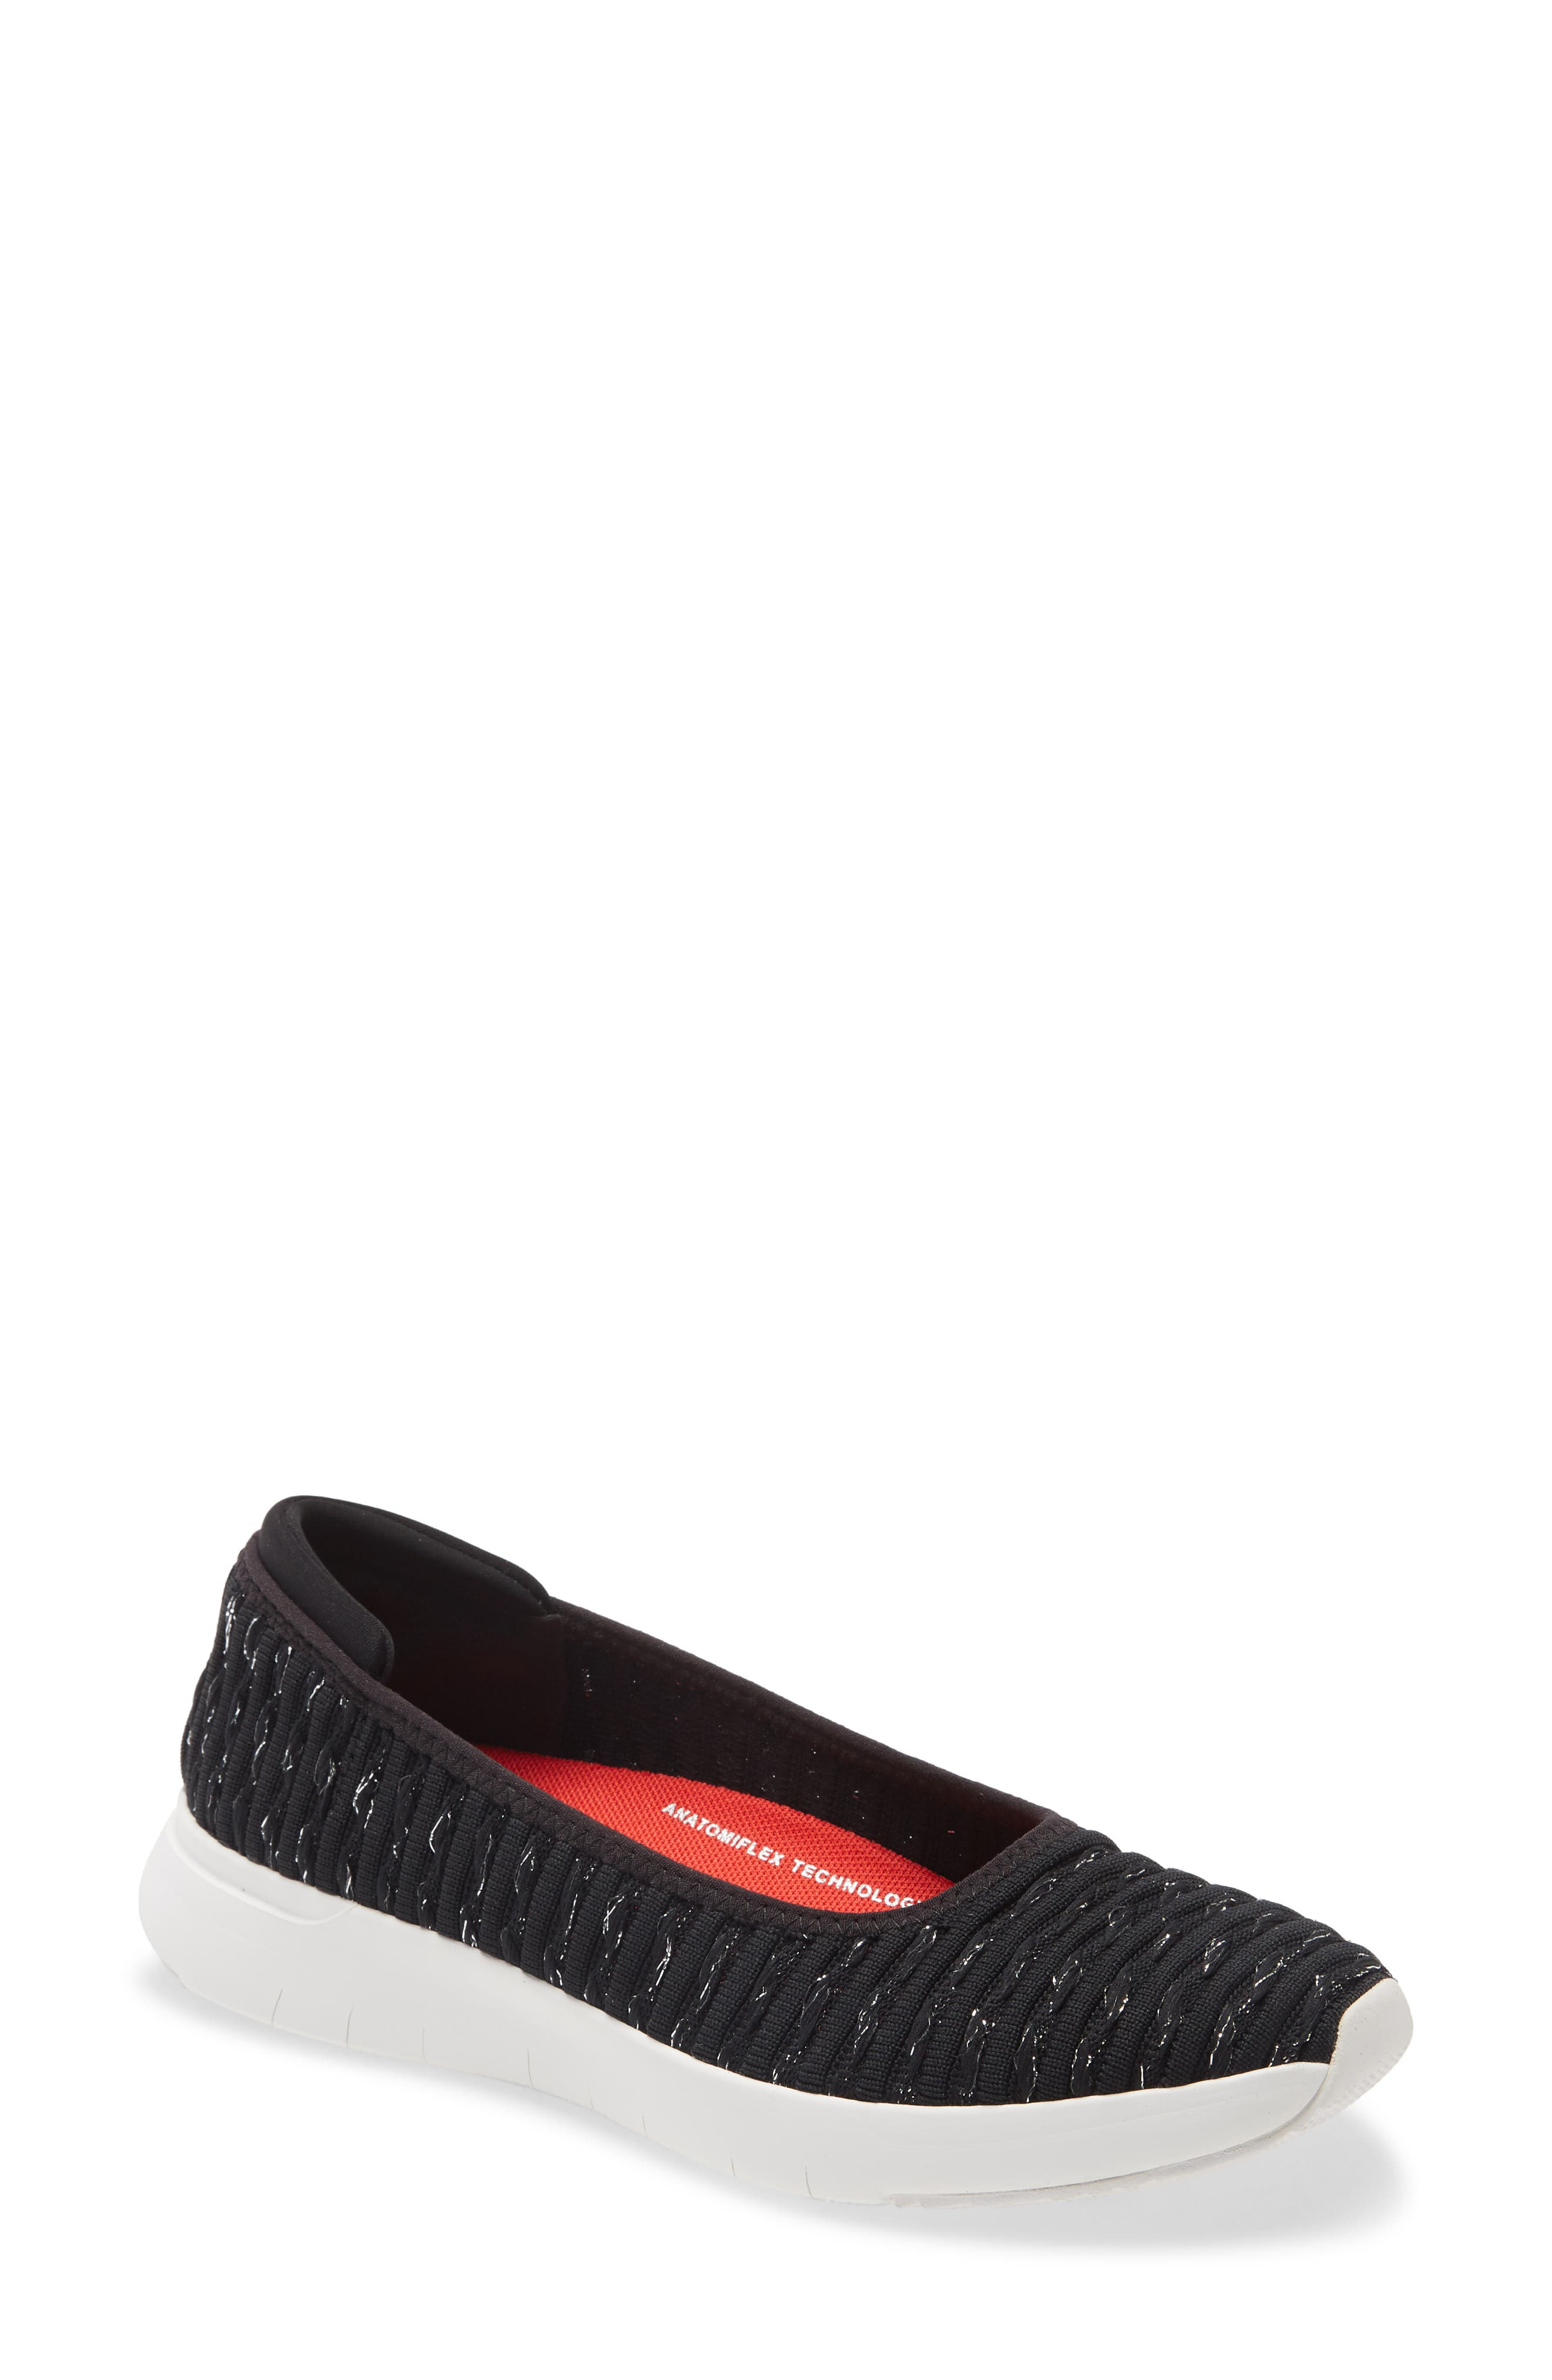 Image of Fitflop Knit Ballerina Flat